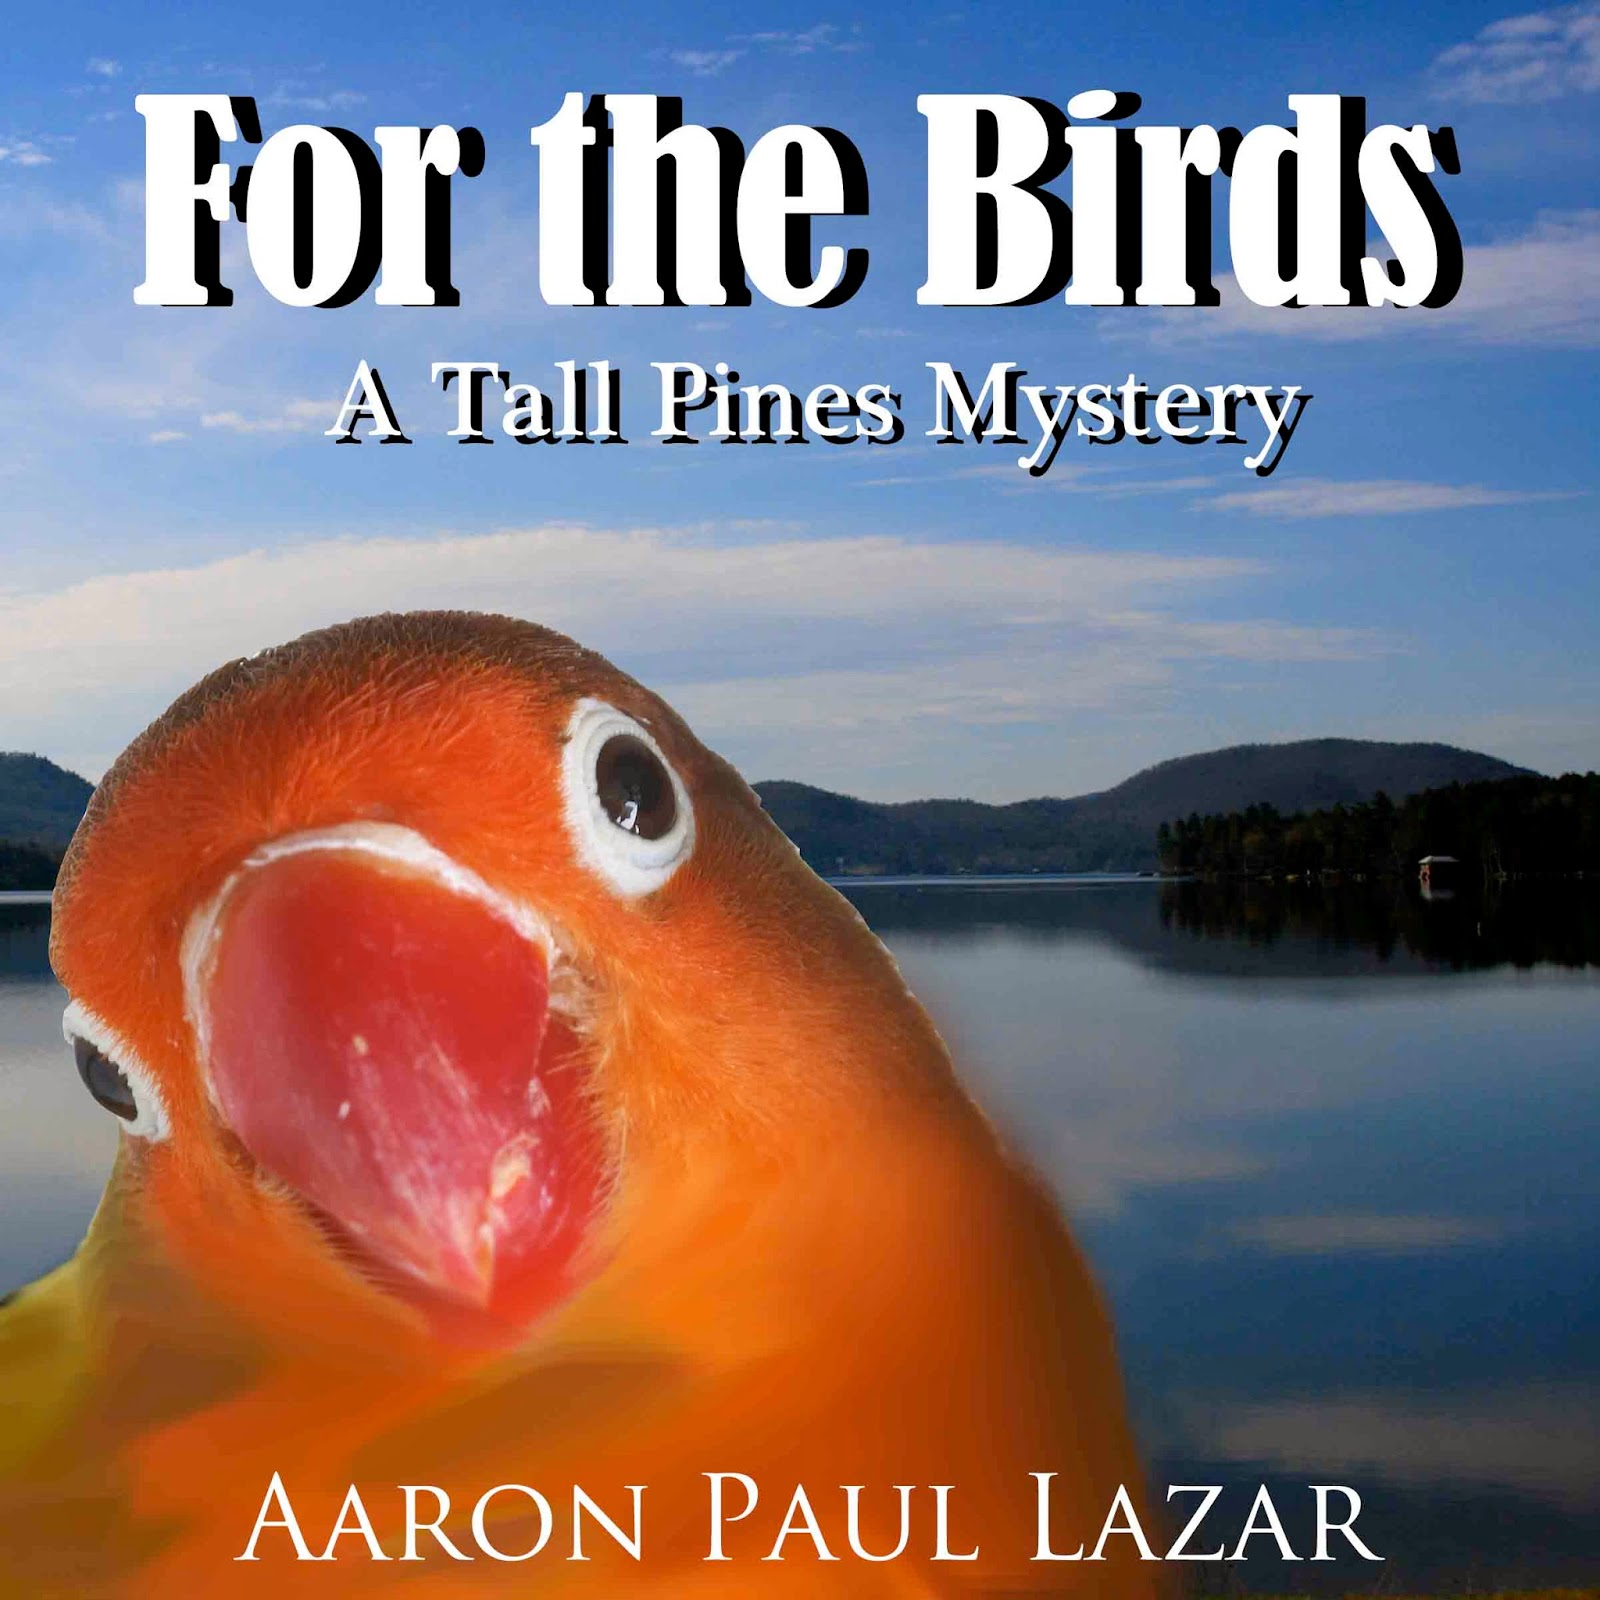 http://www.amazon.com/Birds-Tall-Pines-Mysteries-Book-ebook/dp/B005W629E2/ref=sr_1_1?s=digital-text&ie=UTF8&qid=1412546891&sr=1-1&keywords=for+the+birds%2C+lazar